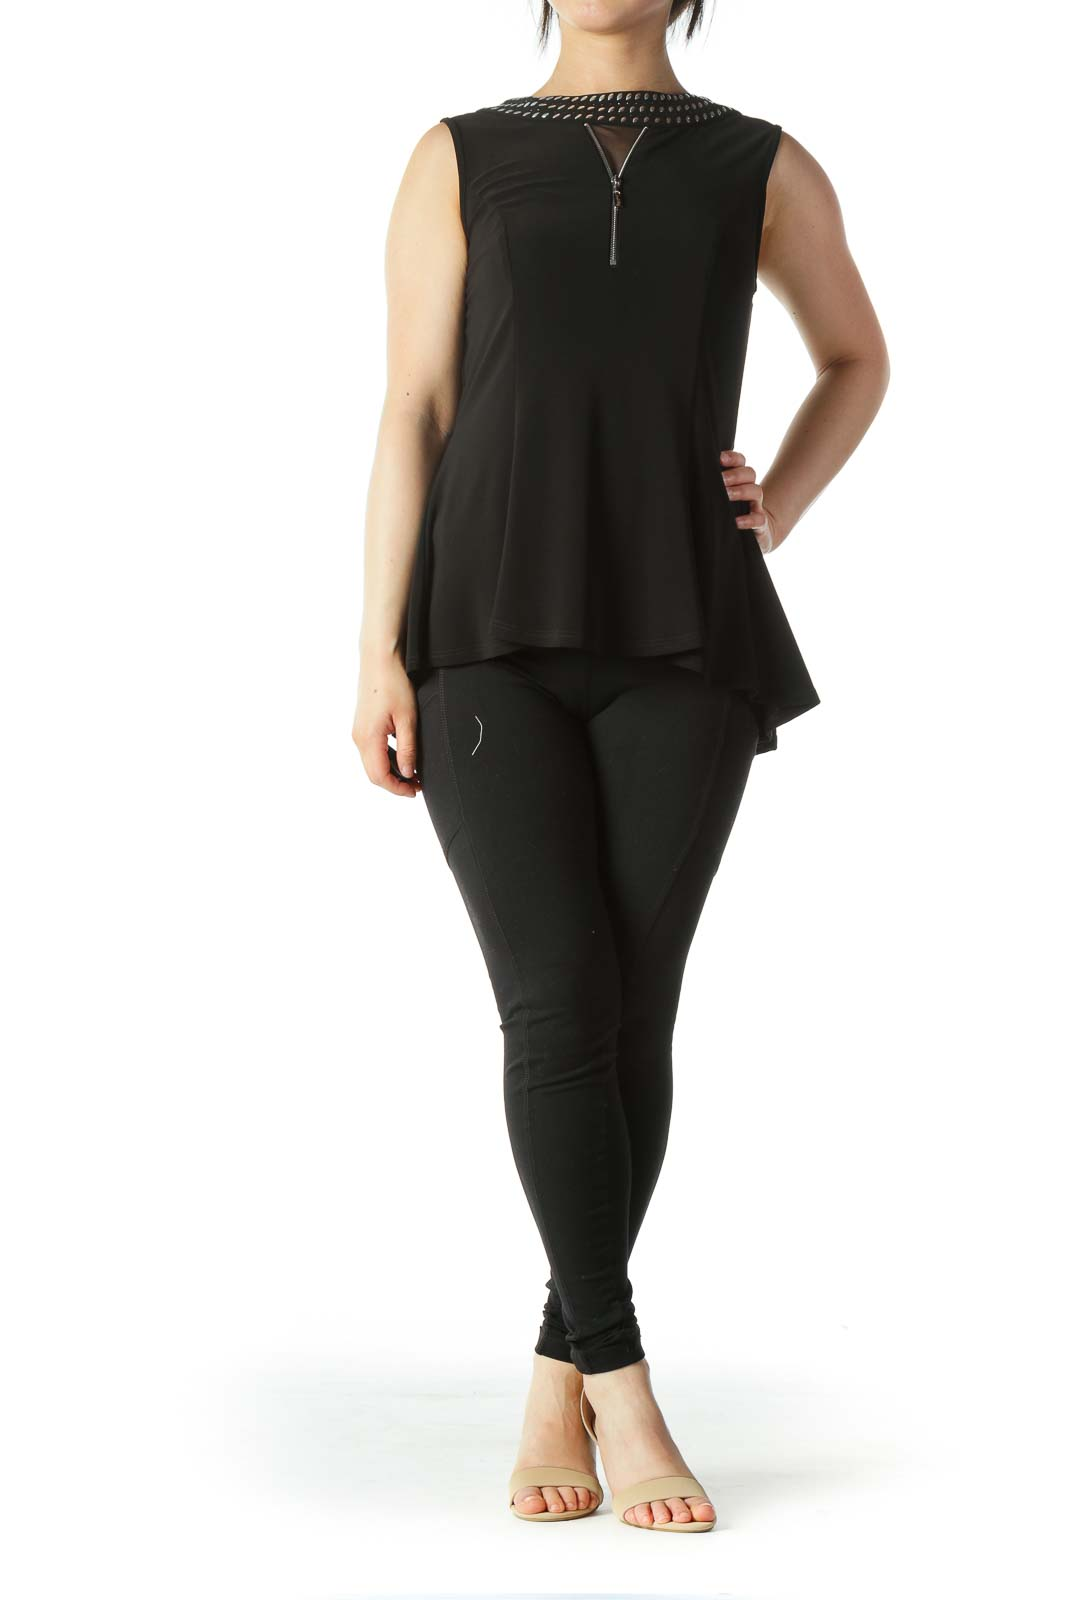 Black Studded and Zipper Detail Neckline A-Line Top